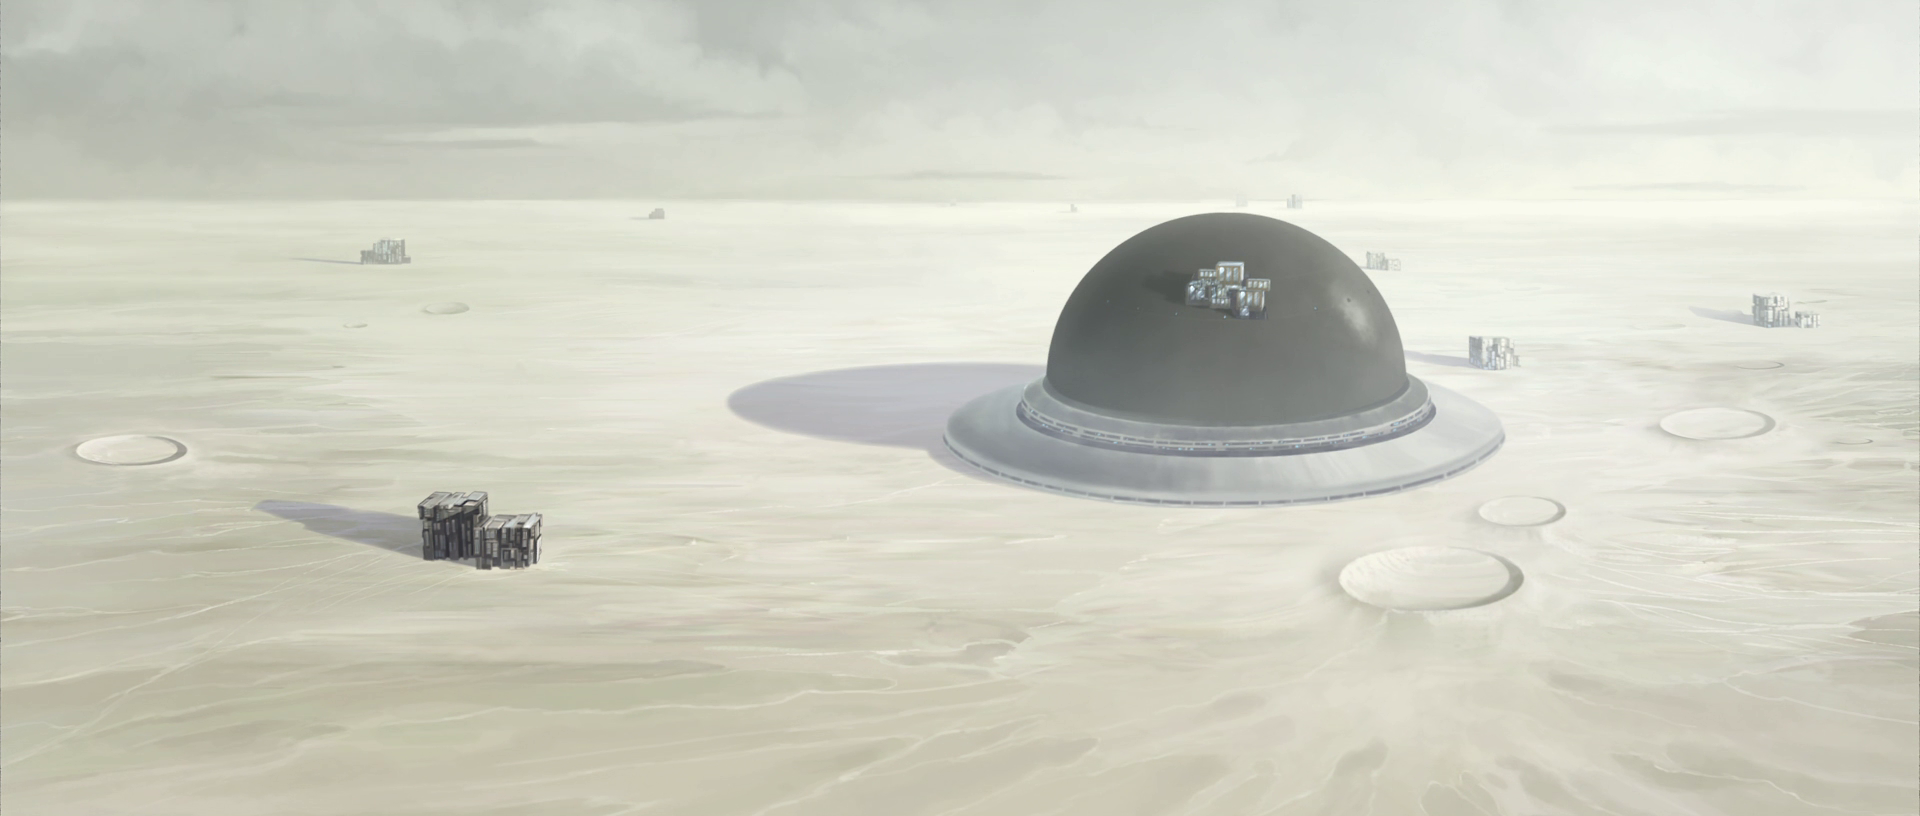 Mandalorian mysteries factions of mandalore starwars areas of mandalore were turned to white sand desert by republic bombardment in 728bby biocorpaavc Image collections